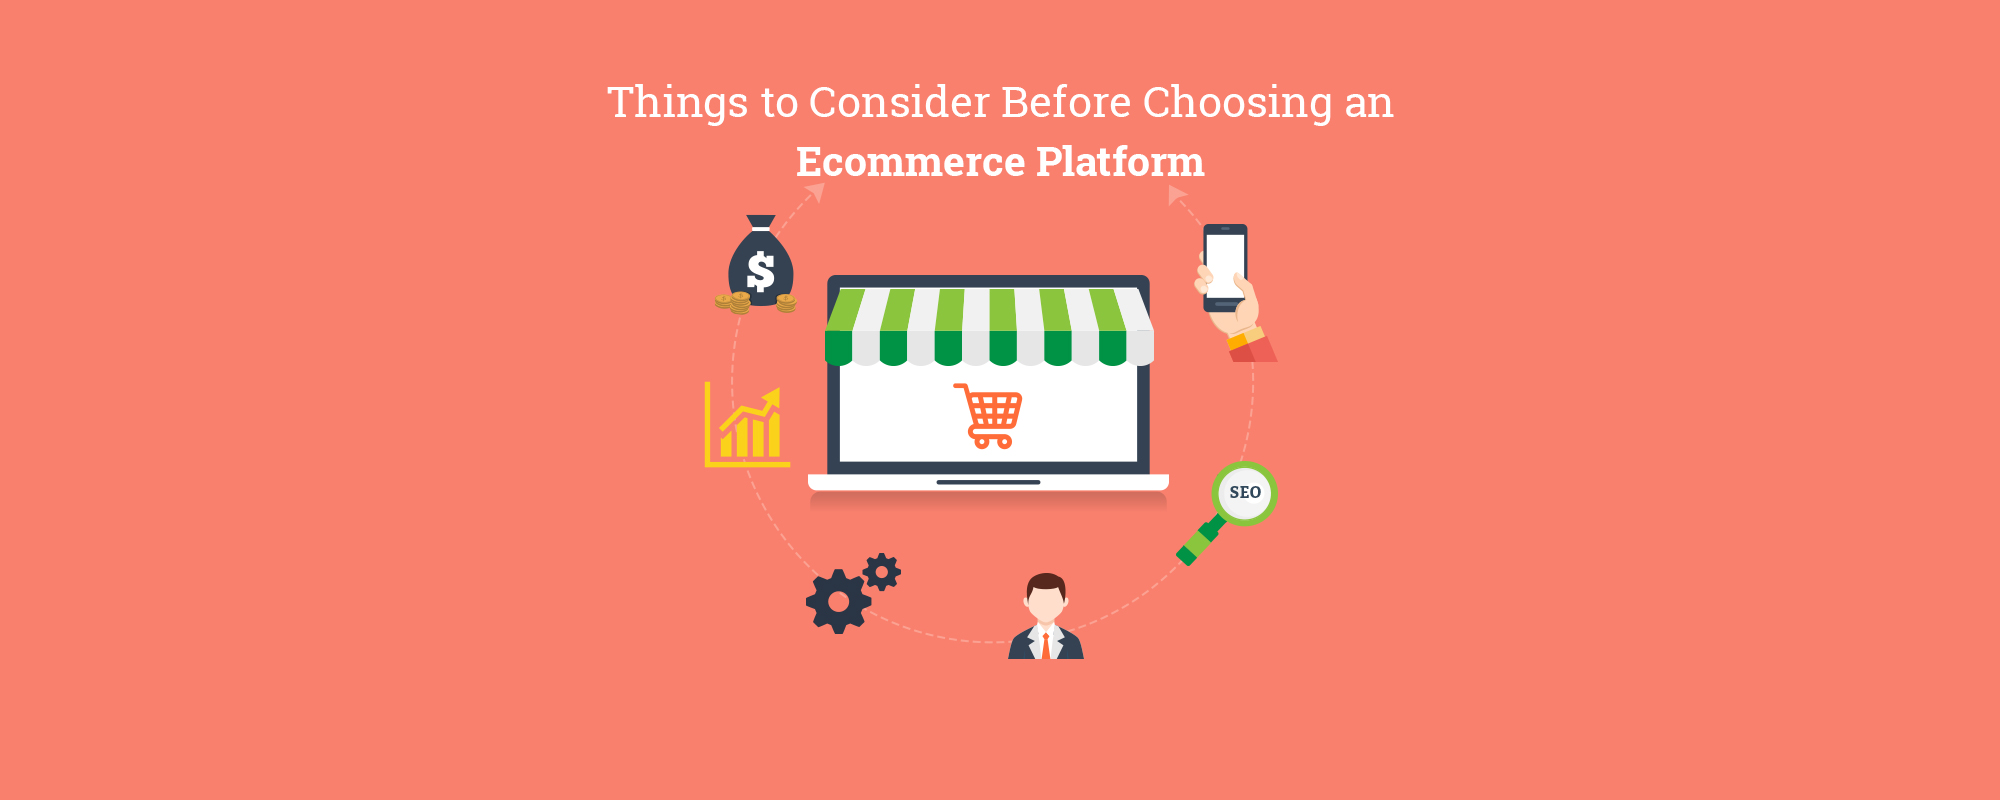 13 Important Things to Consider Before Choosing an Ecommerce Platform